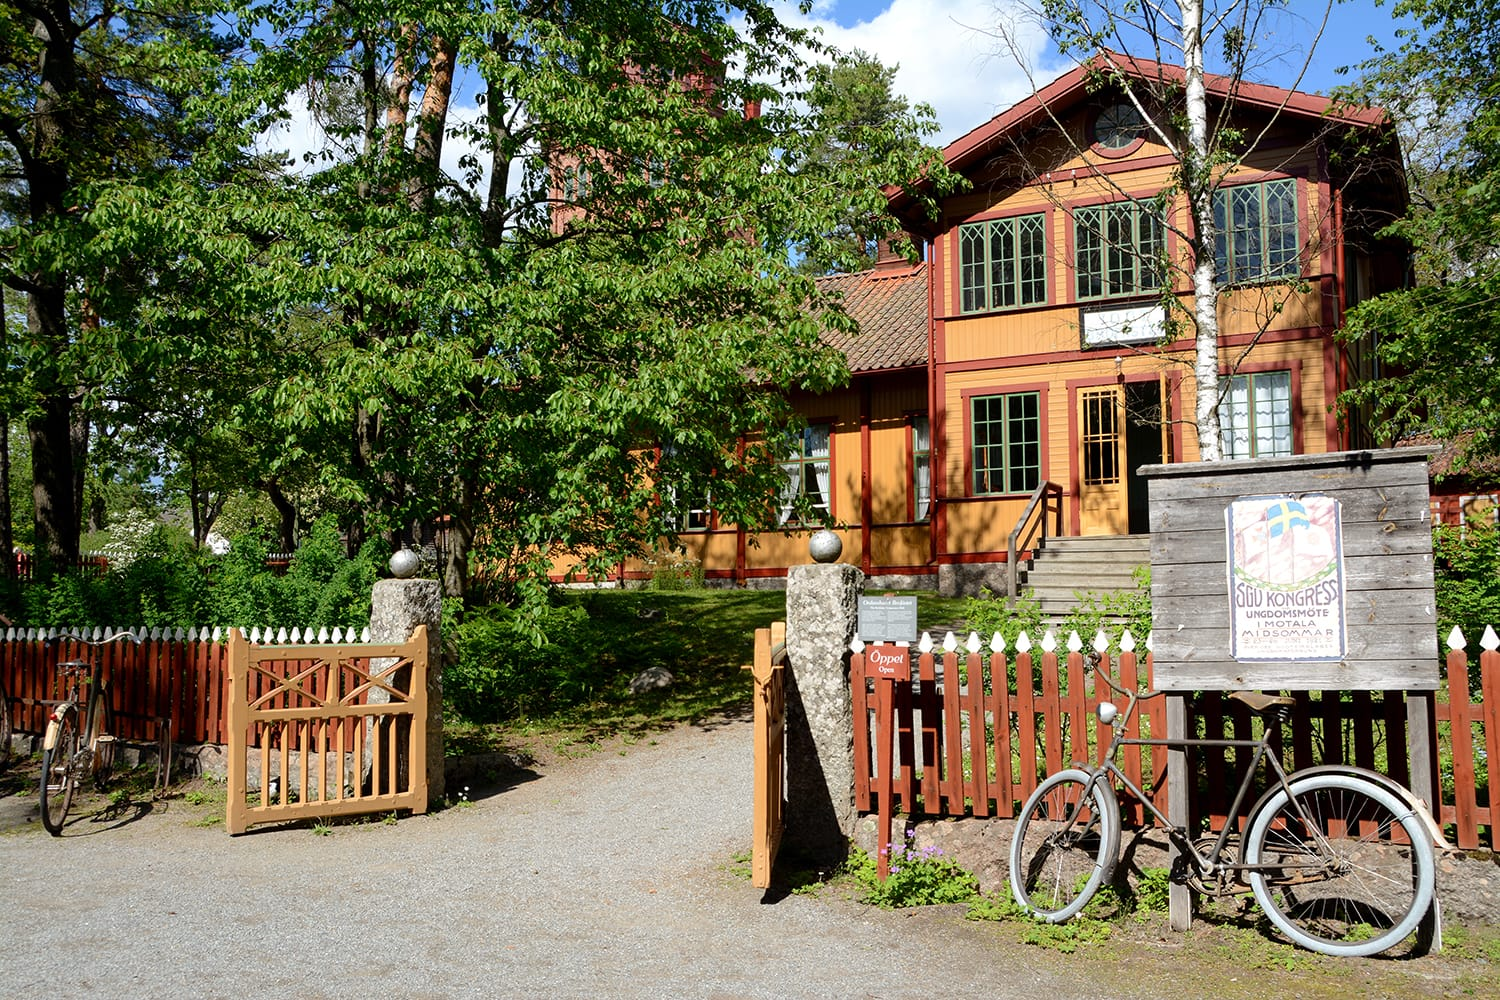 The Order House Brofästet originates from Tierp. It was built in 1895 by the Brofästet sobriety register within IOGT. It is located in Skansen in Stockholm.